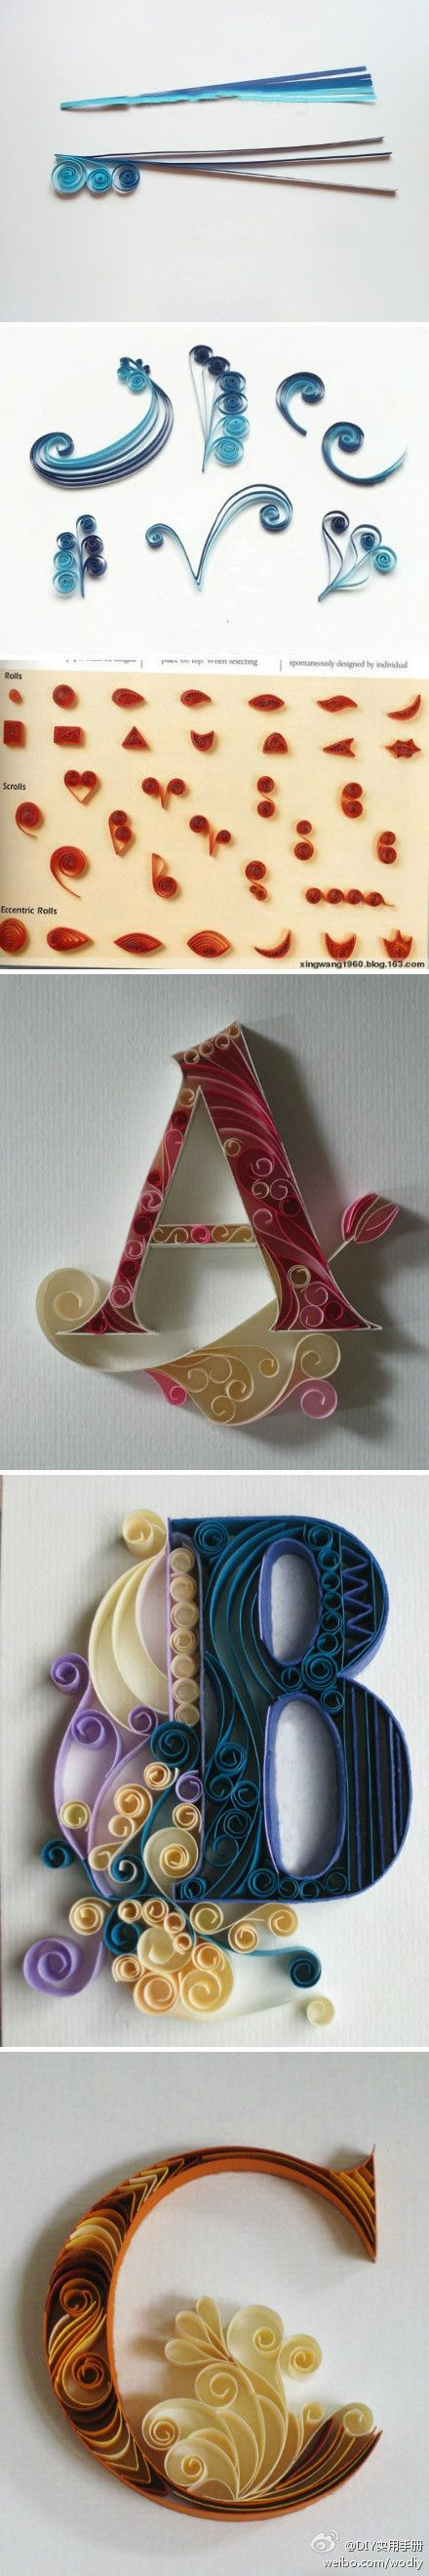 quilling. I need to look into this...